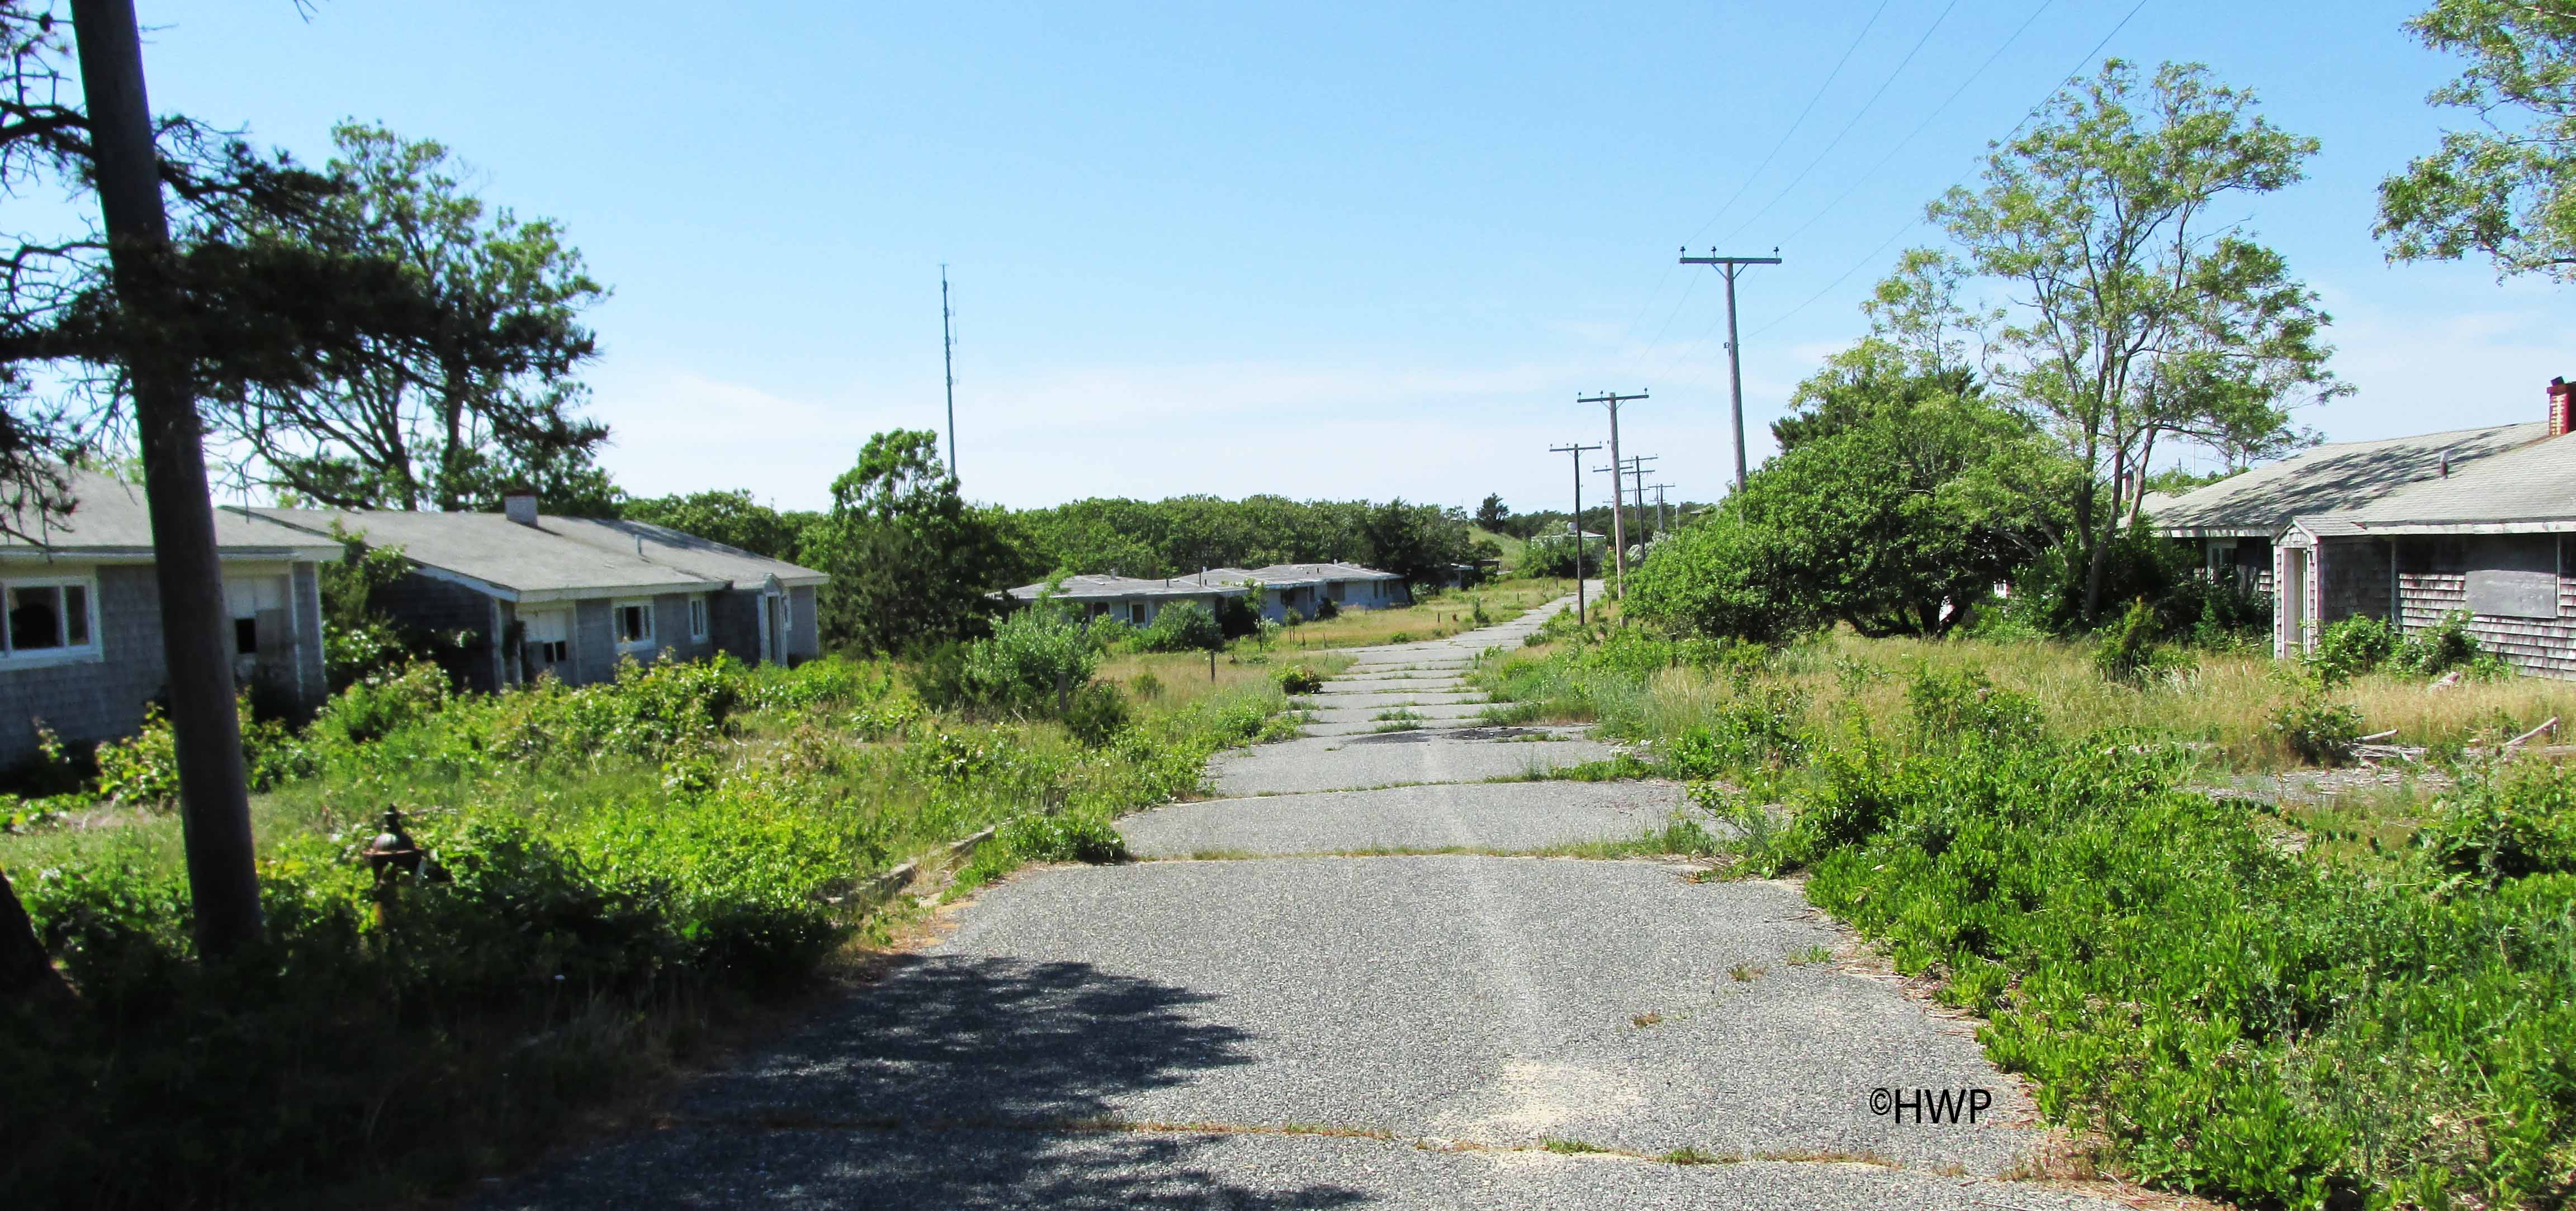 Ruins Of Old Military Bases Are Now Nothing More Than Graveyards. But On The  Far Reaches Of Cape Cod, There Is One That Stands Out From All Others.